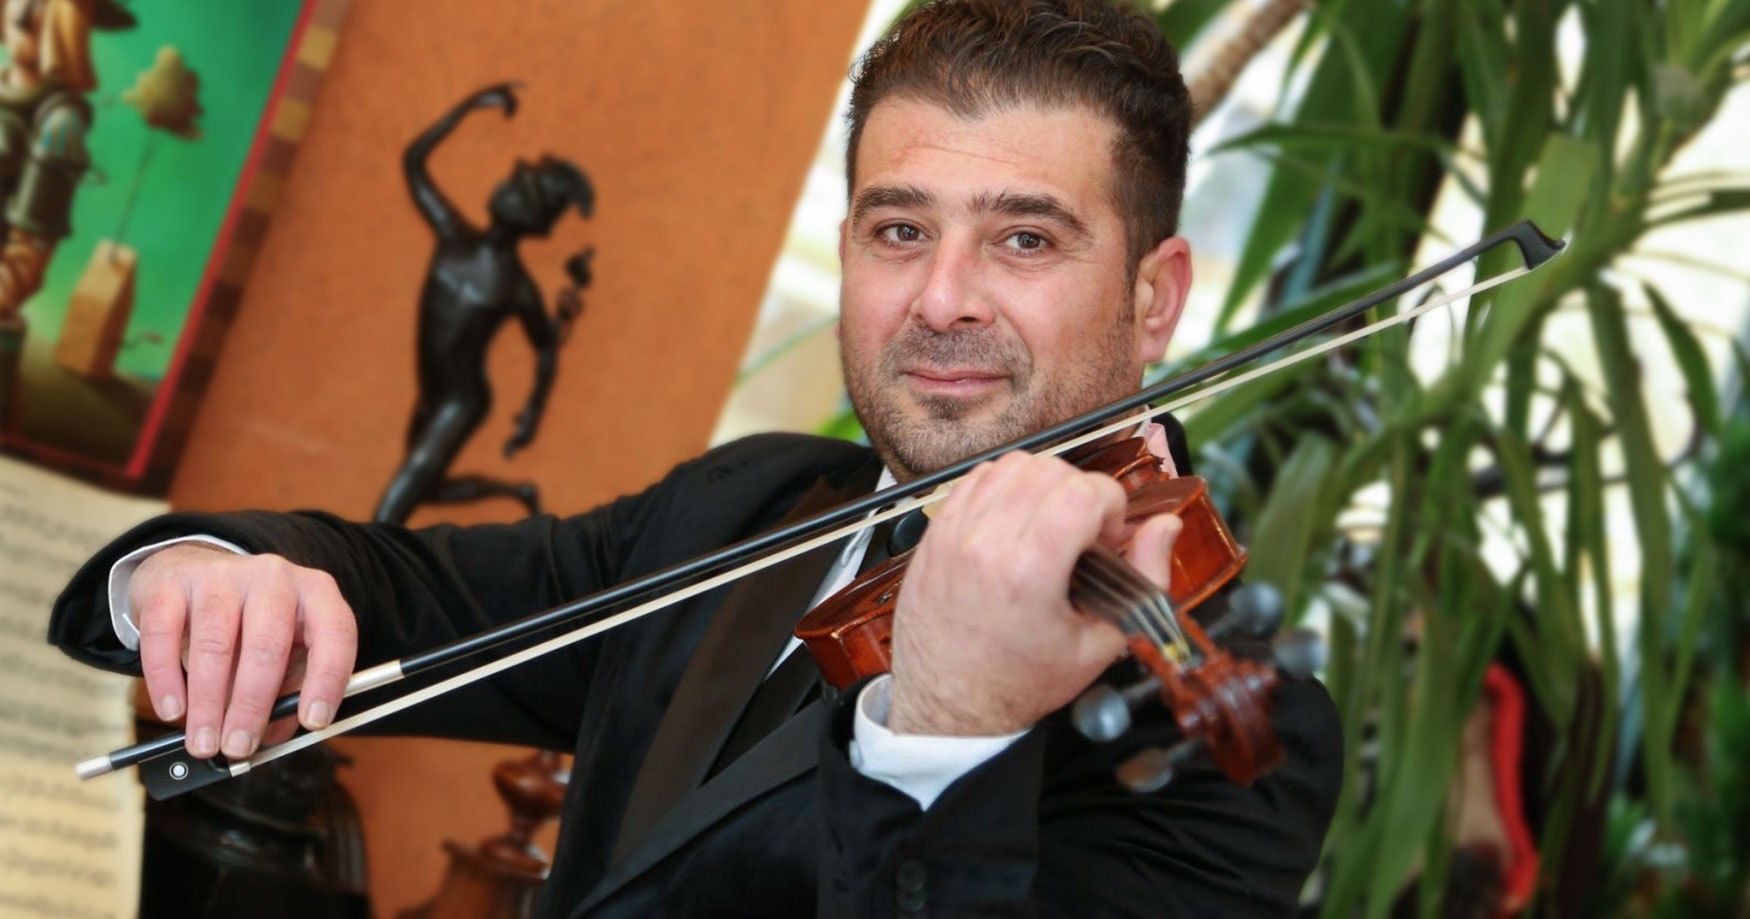 Concertmaster of the Subotica Philharmonic Pal Žiga